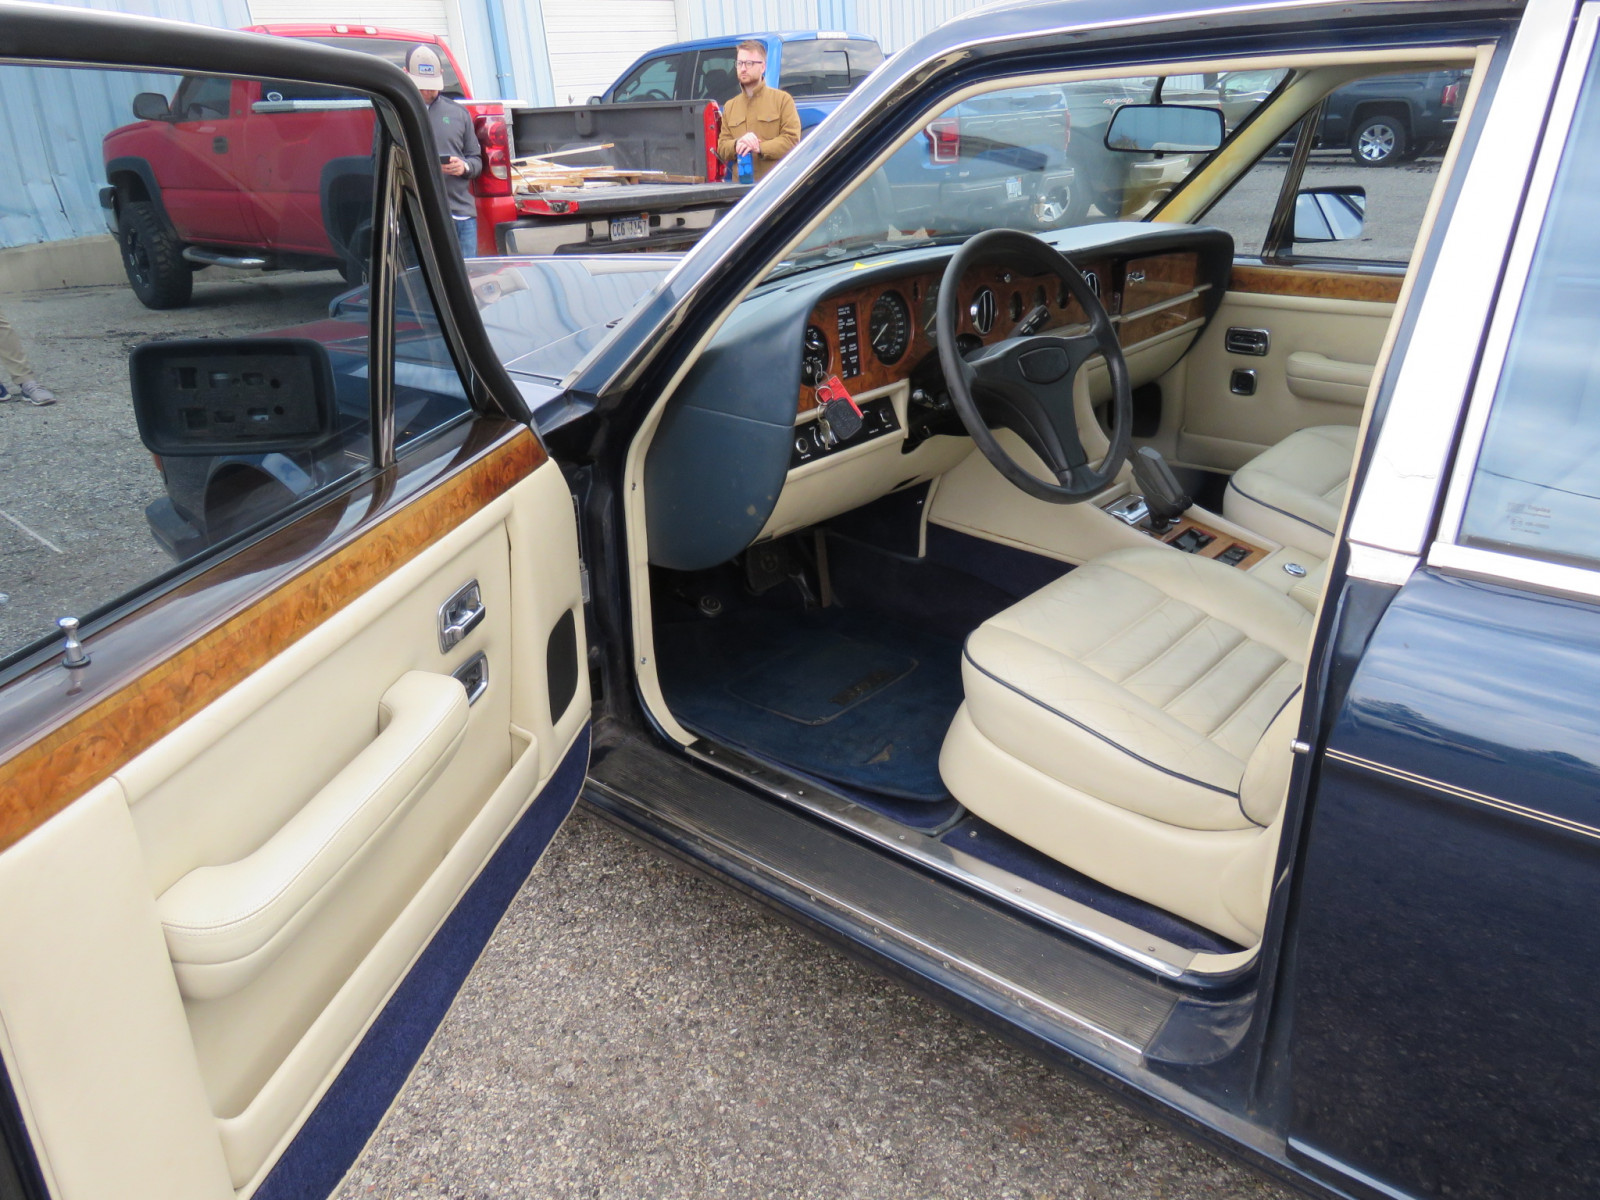 1988 Bentley Turbo R 4dr Sedan - Image 9